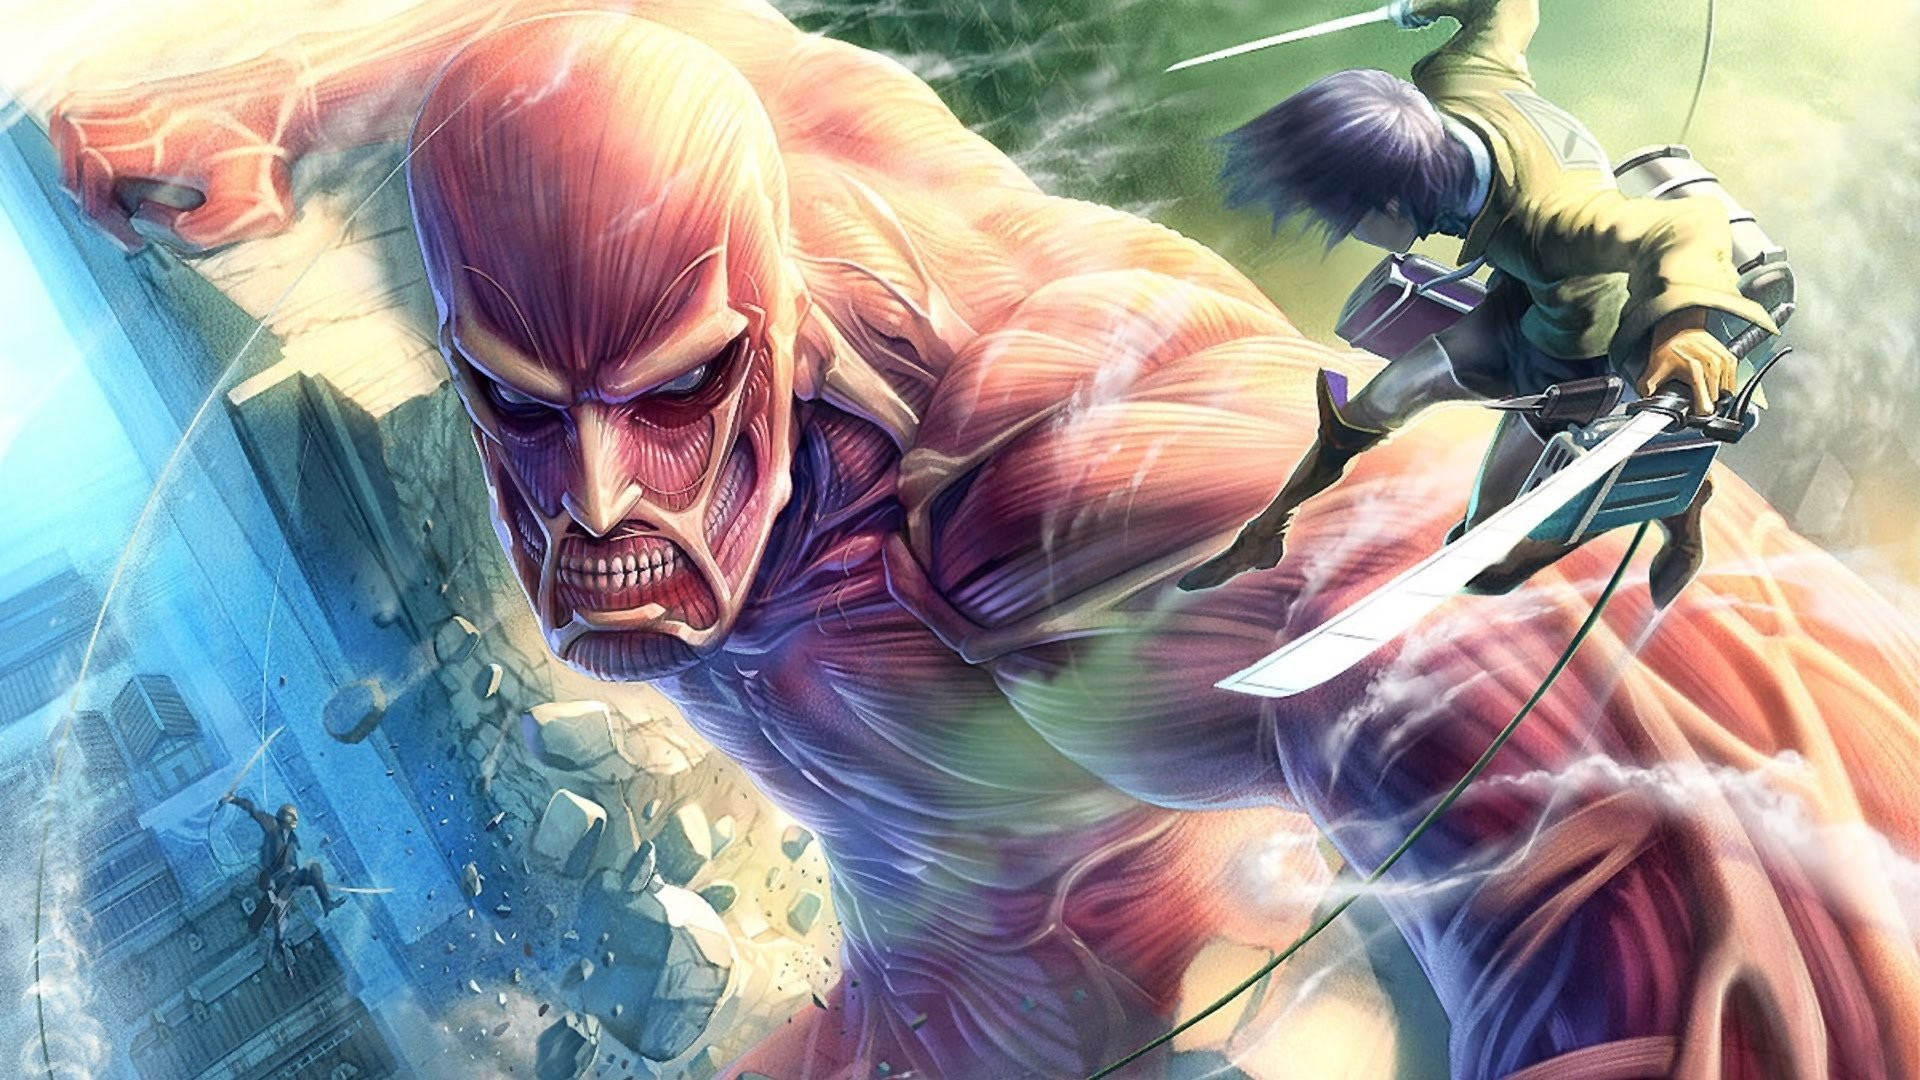 Epic Anime Fighting Wallpaper High Definition